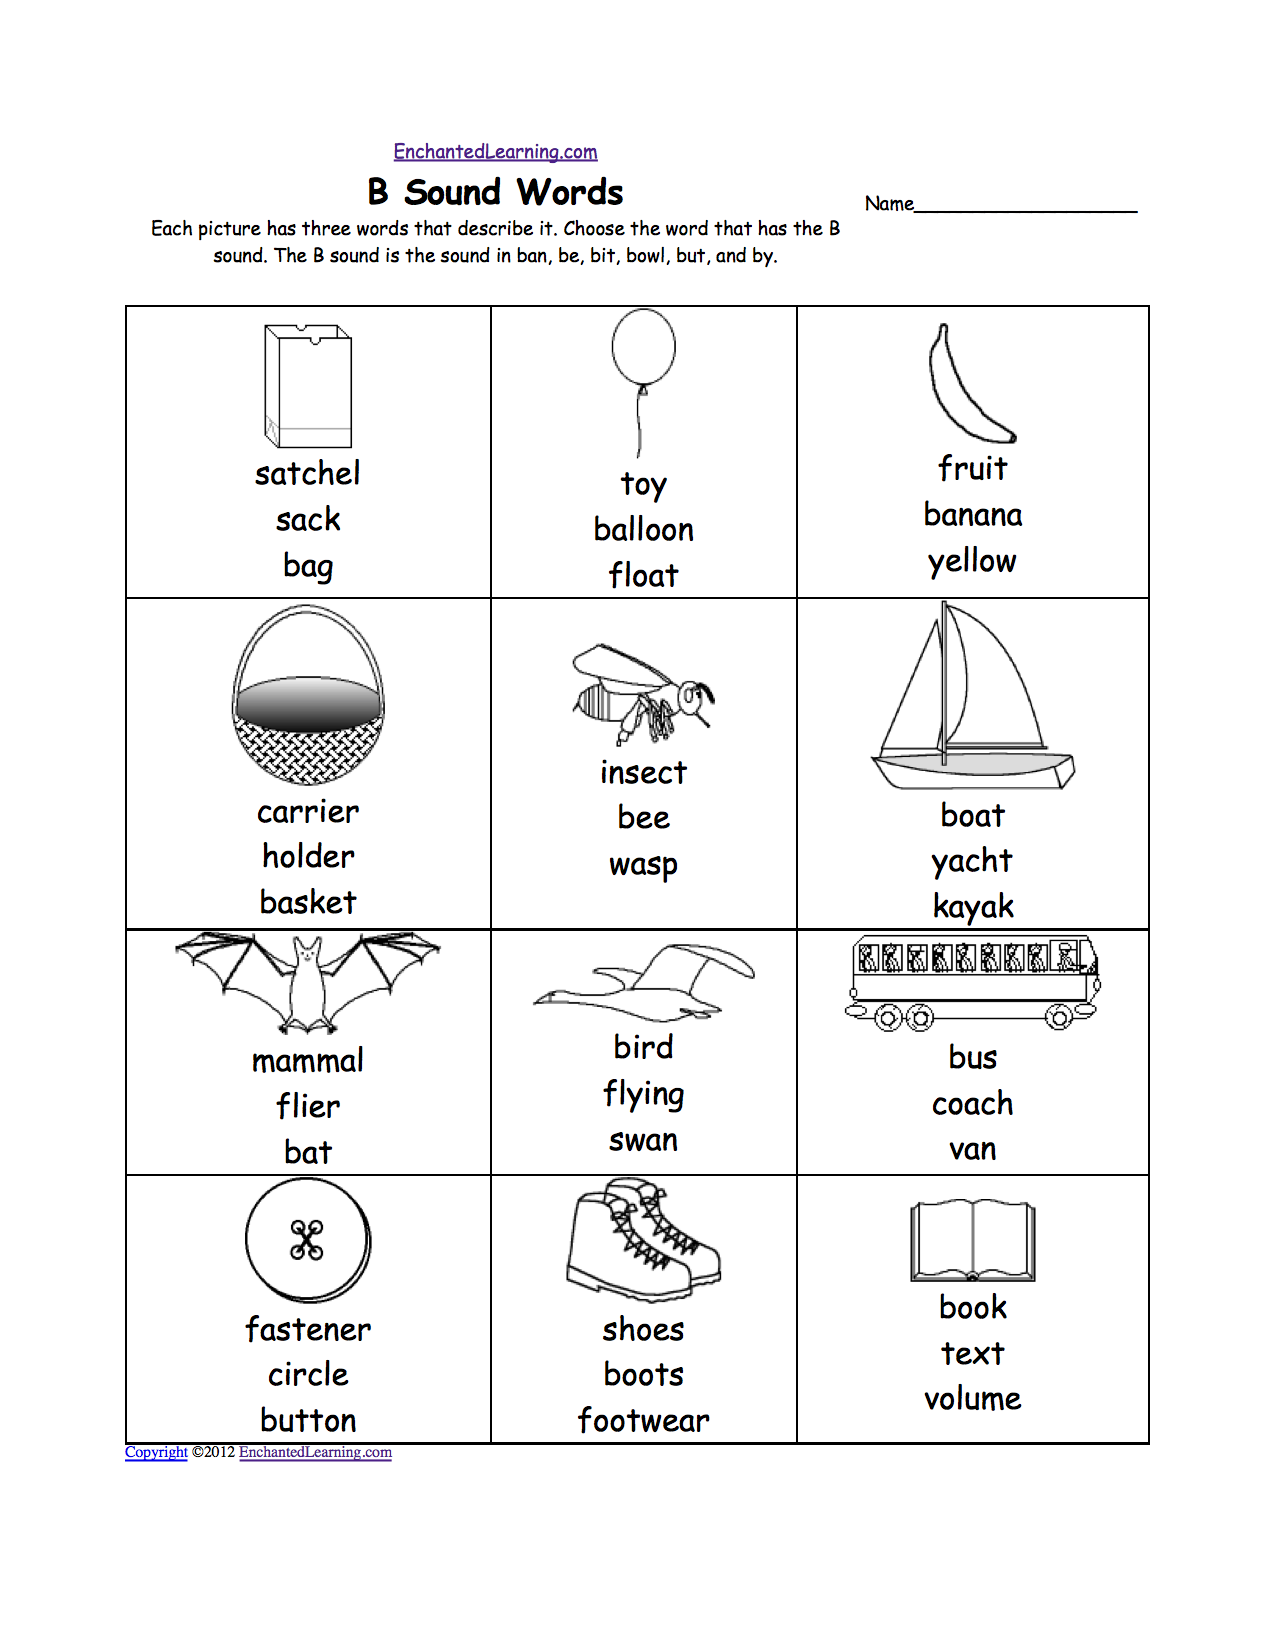 Weirdmailus  Winsome Phonics Worksheets Multiple Choice Worksheets To Print  With Exquisite Quotbquot Sound Phonics Worksheet Multiple Choice Each Picture Has Three Words That Describe It Choose The Word That Has A Quotbquot Sound The Quotbquot Sound Is The Sound  With Delightful Problem Solving Worksheets For Grade  Also Tudor Worksheets In Addition Adding Without Regrouping Worksheets And Alphabet B Worksheet As Well As Teachers Websites For Worksheets Additionally Electromagnetism Worksheets From Enchantedlearningcom With Weirdmailus  Exquisite Phonics Worksheets Multiple Choice Worksheets To Print  With Delightful Quotbquot Sound Phonics Worksheet Multiple Choice Each Picture Has Three Words That Describe It Choose The Word That Has A Quotbquot Sound The Quotbquot Sound Is The Sound  And Winsome Problem Solving Worksheets For Grade  Also Tudor Worksheets In Addition Adding Without Regrouping Worksheets From Enchantedlearningcom